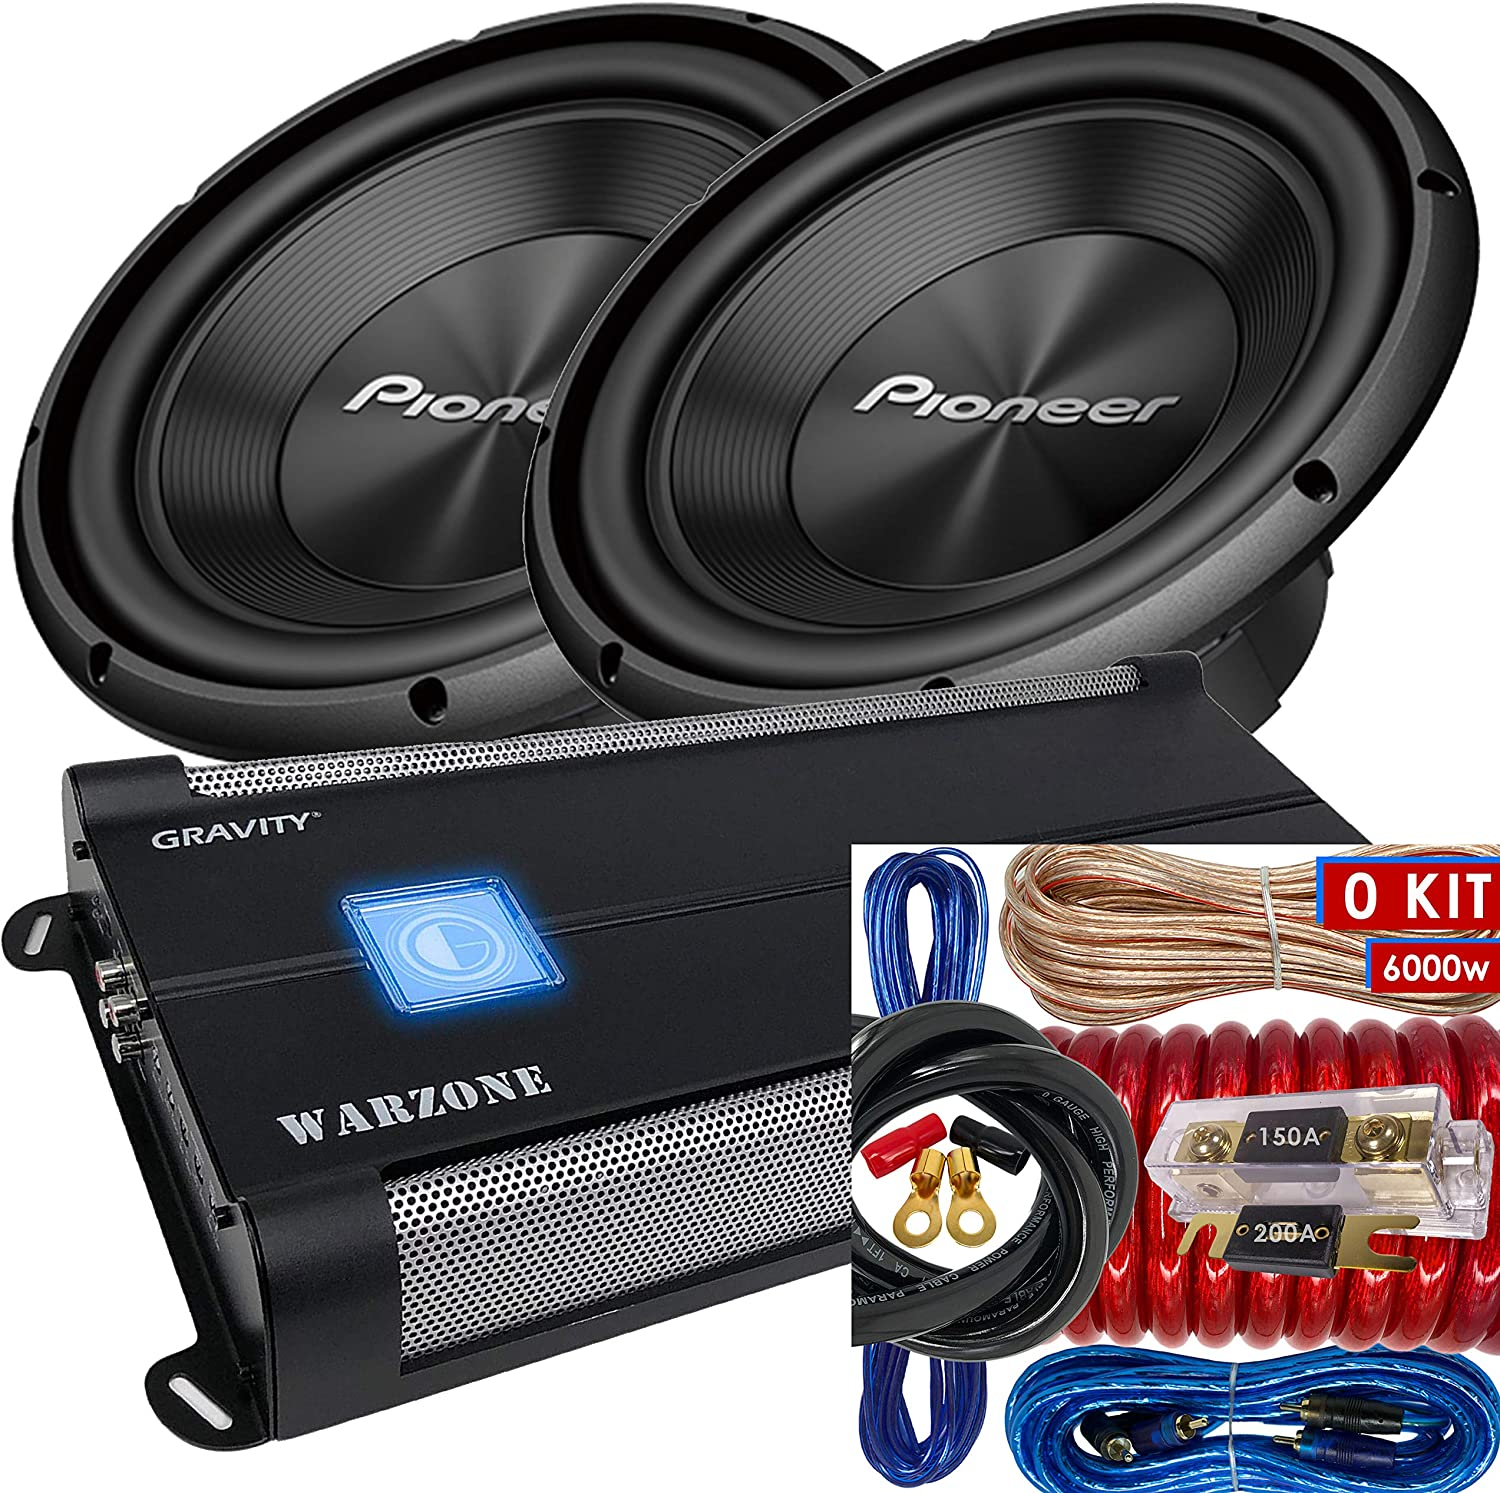 """1500 Watts Pair of Pioneer TS-A300D4 12/"""" Dual 4 Ohms Voice Coil Subwoofer + 6000 Watts Monoblock Amplifier 2 Subwoofer 0 Gauge Installation Kit Included"""